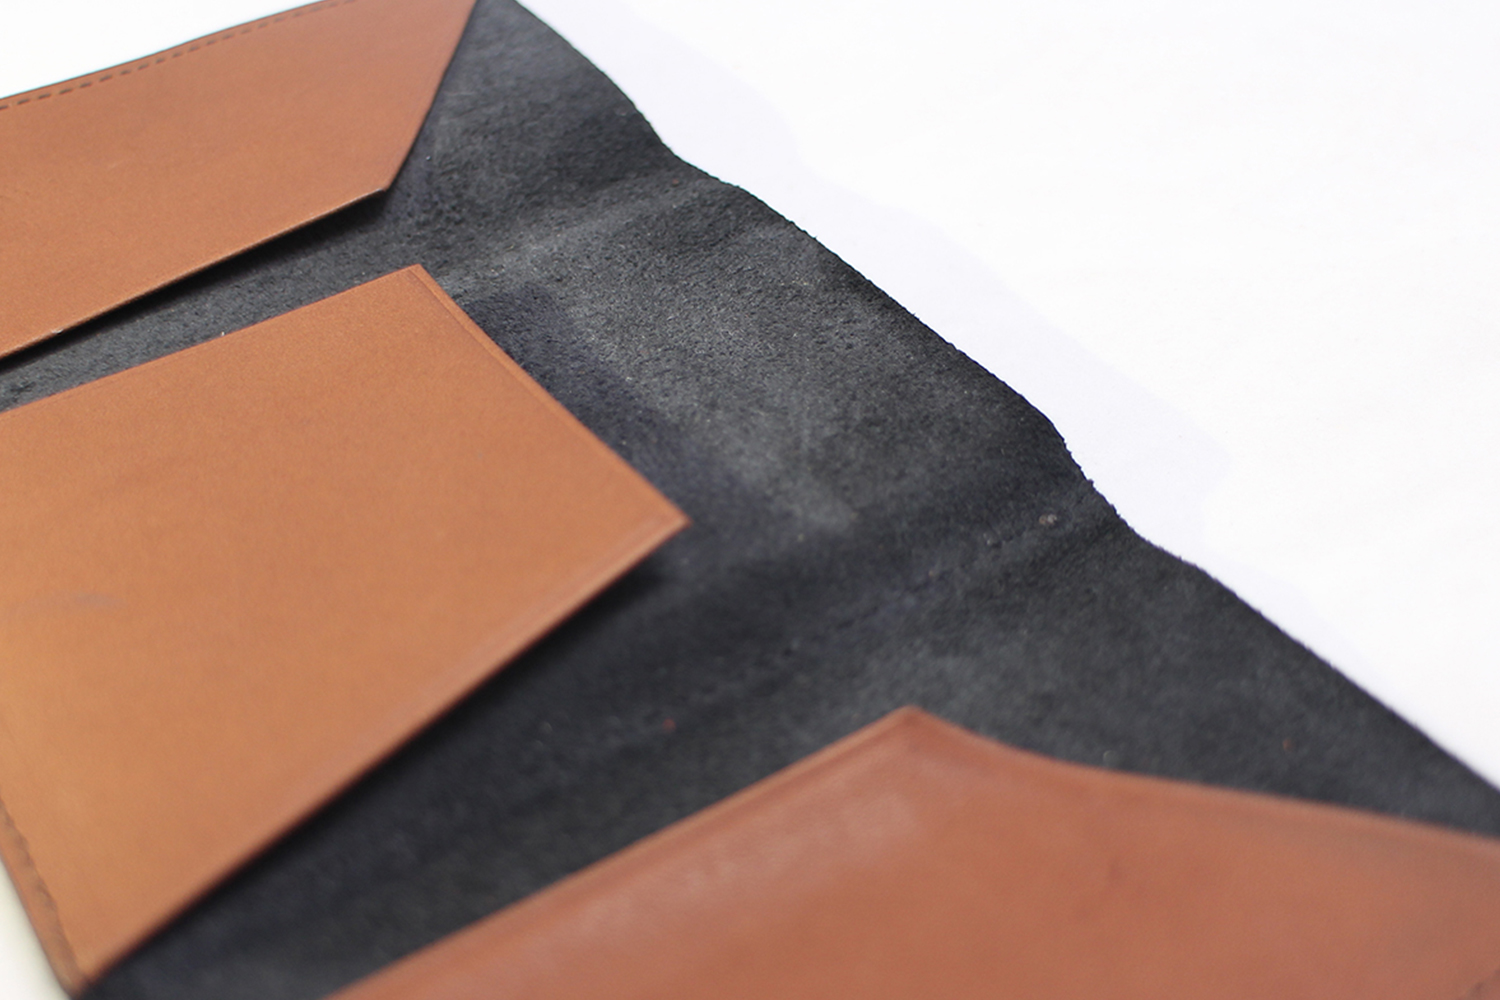 A New Leather Tri-Fold Minimalist Wallet | Volo Non-Wallet II